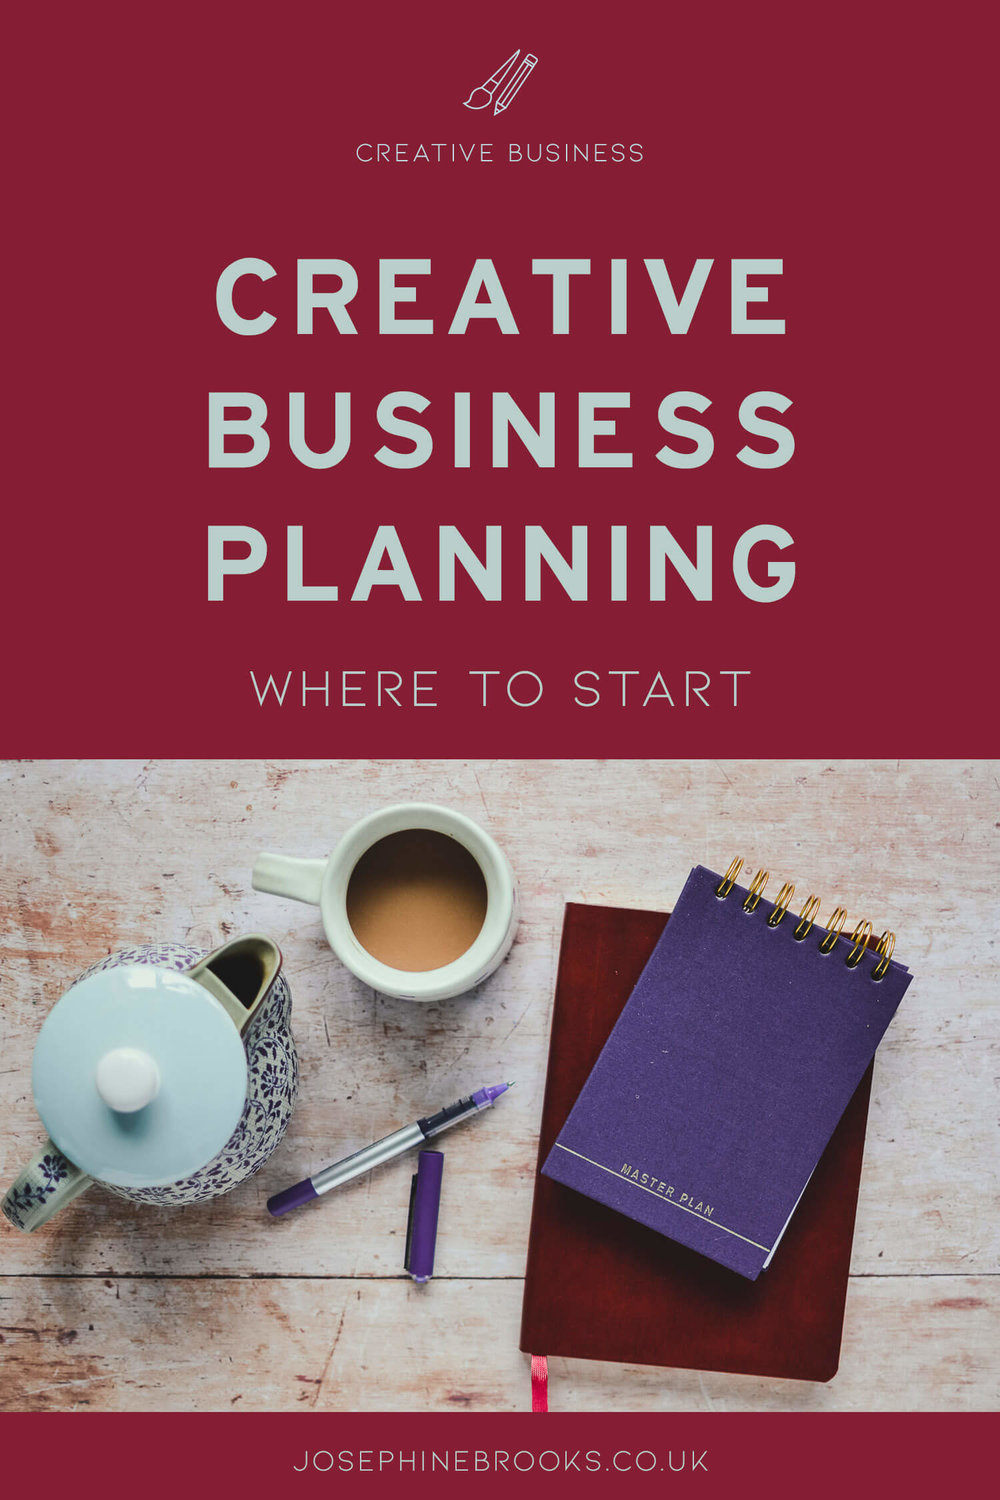 Creative business planning, Quarterly Business planning for makers, Handmade business planning, Creative business plan, how to start a creative business